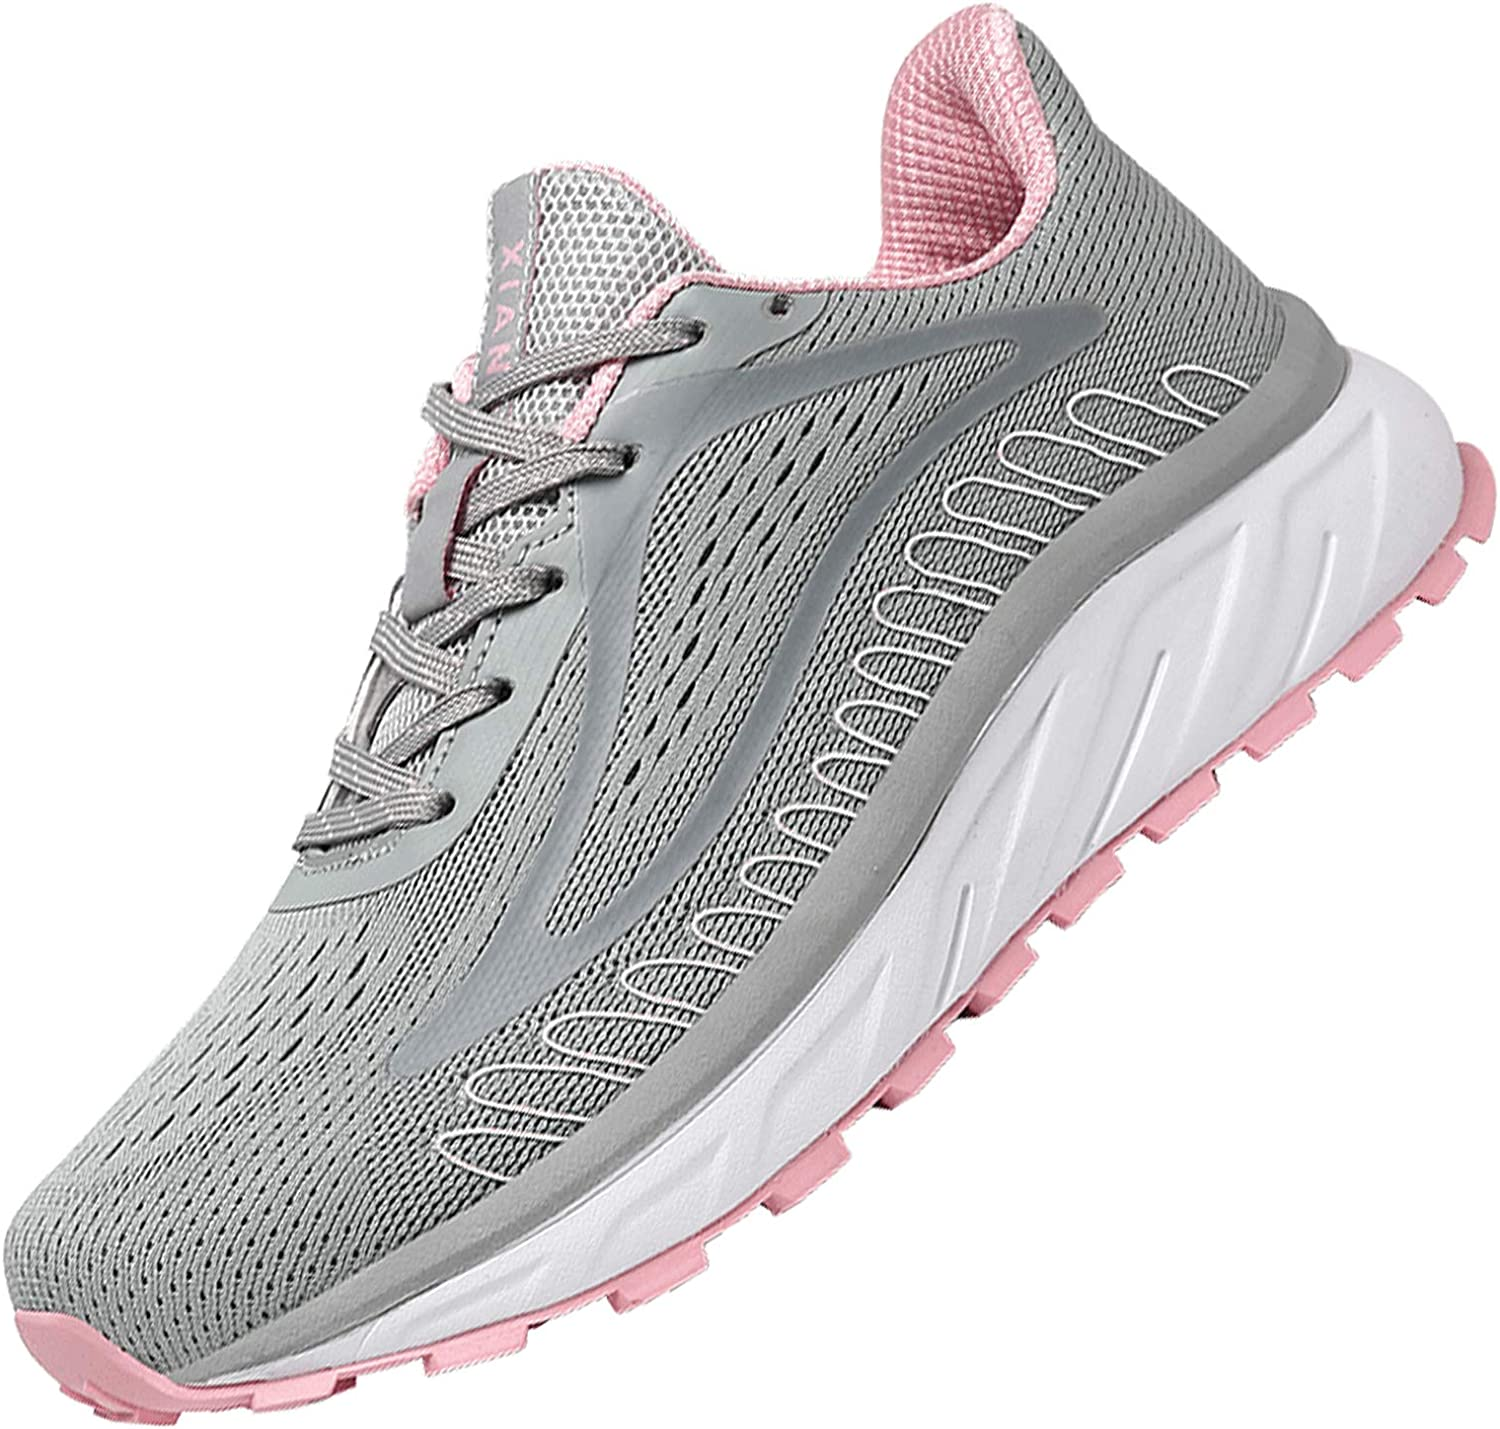 XIANV Women Men Running Shoes Breathable Slip On Sneakers Mesh Sport Athletic Fashion Tennis Comfort Fitness Walking Shoes